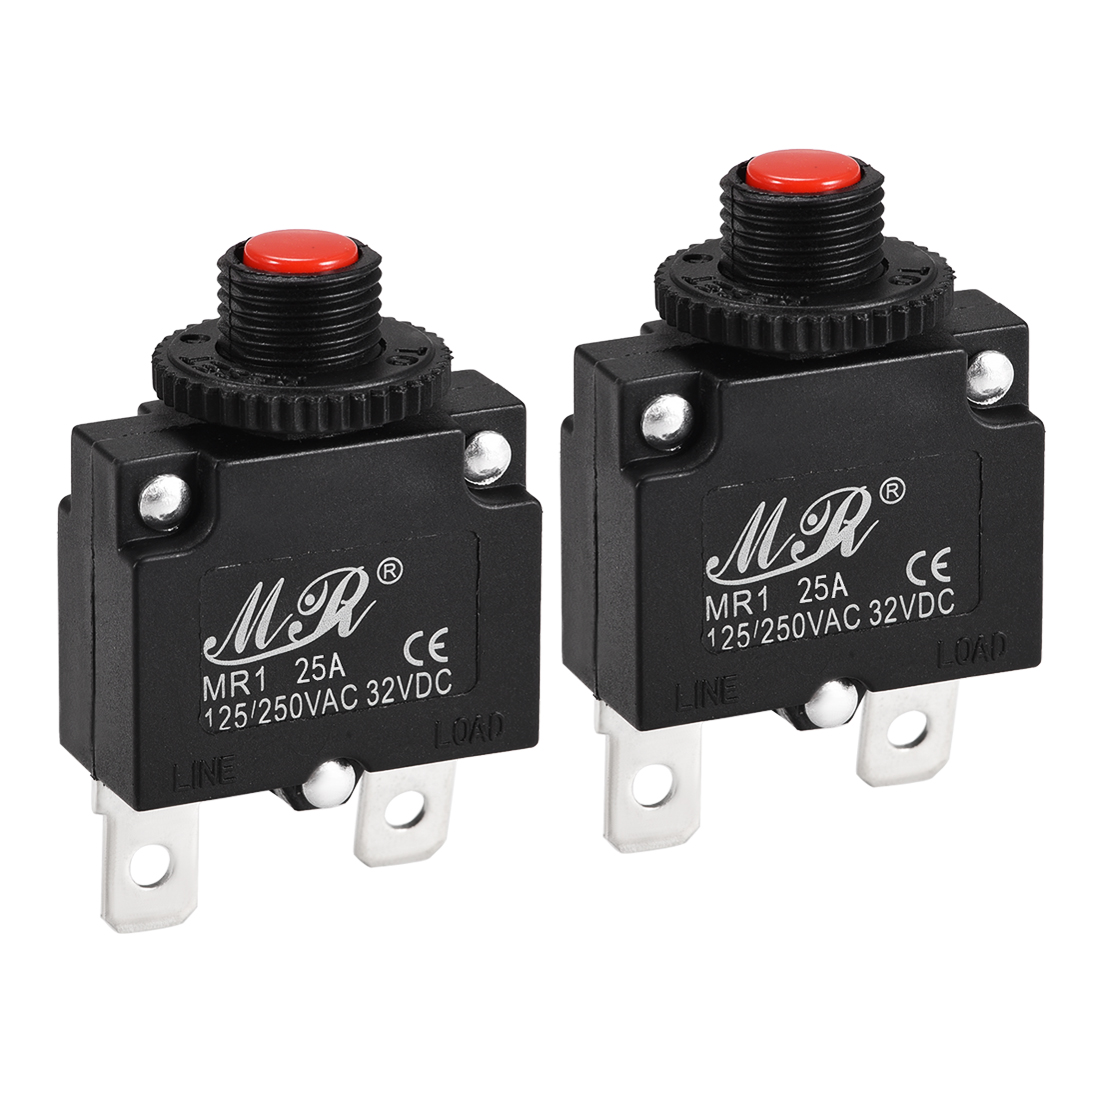 2 Pcs 25A Push Button Manual Reset Overload Protector Thermal Circuit Breakers